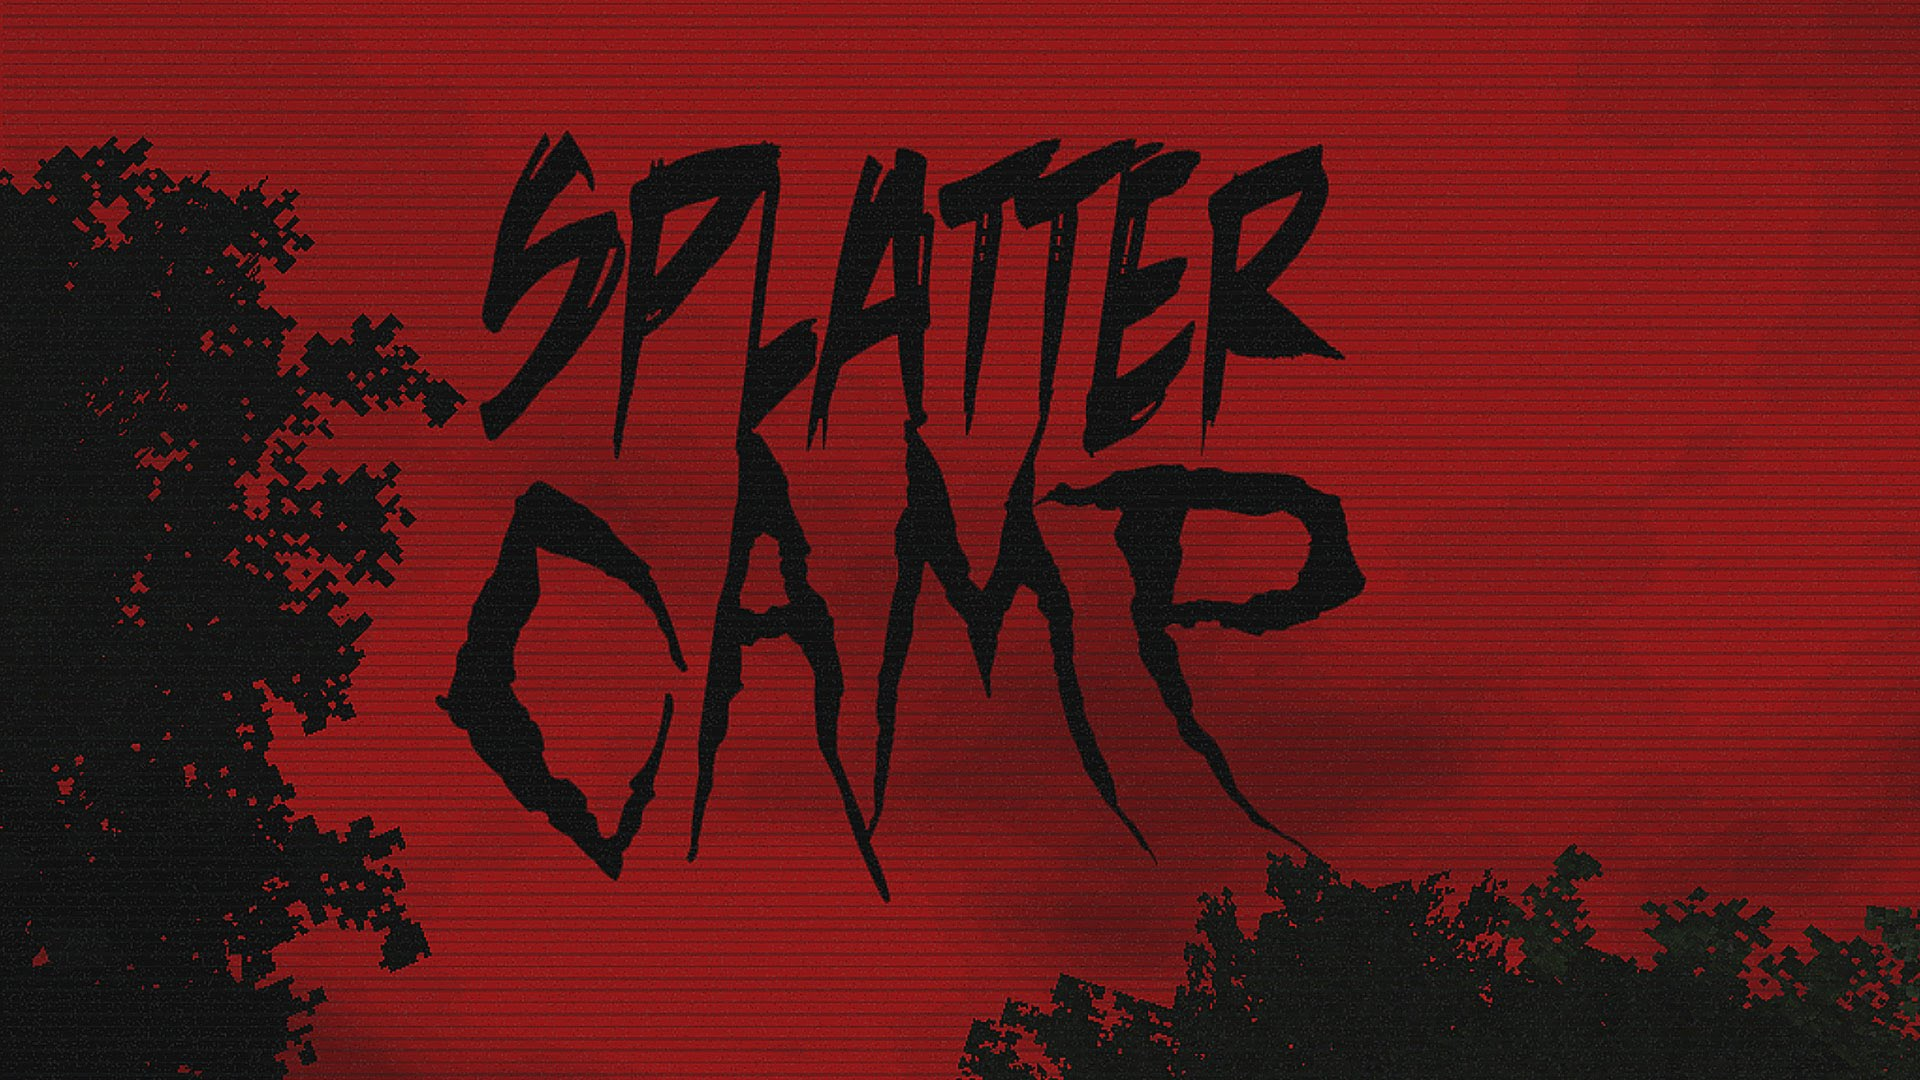 Splatter Camp